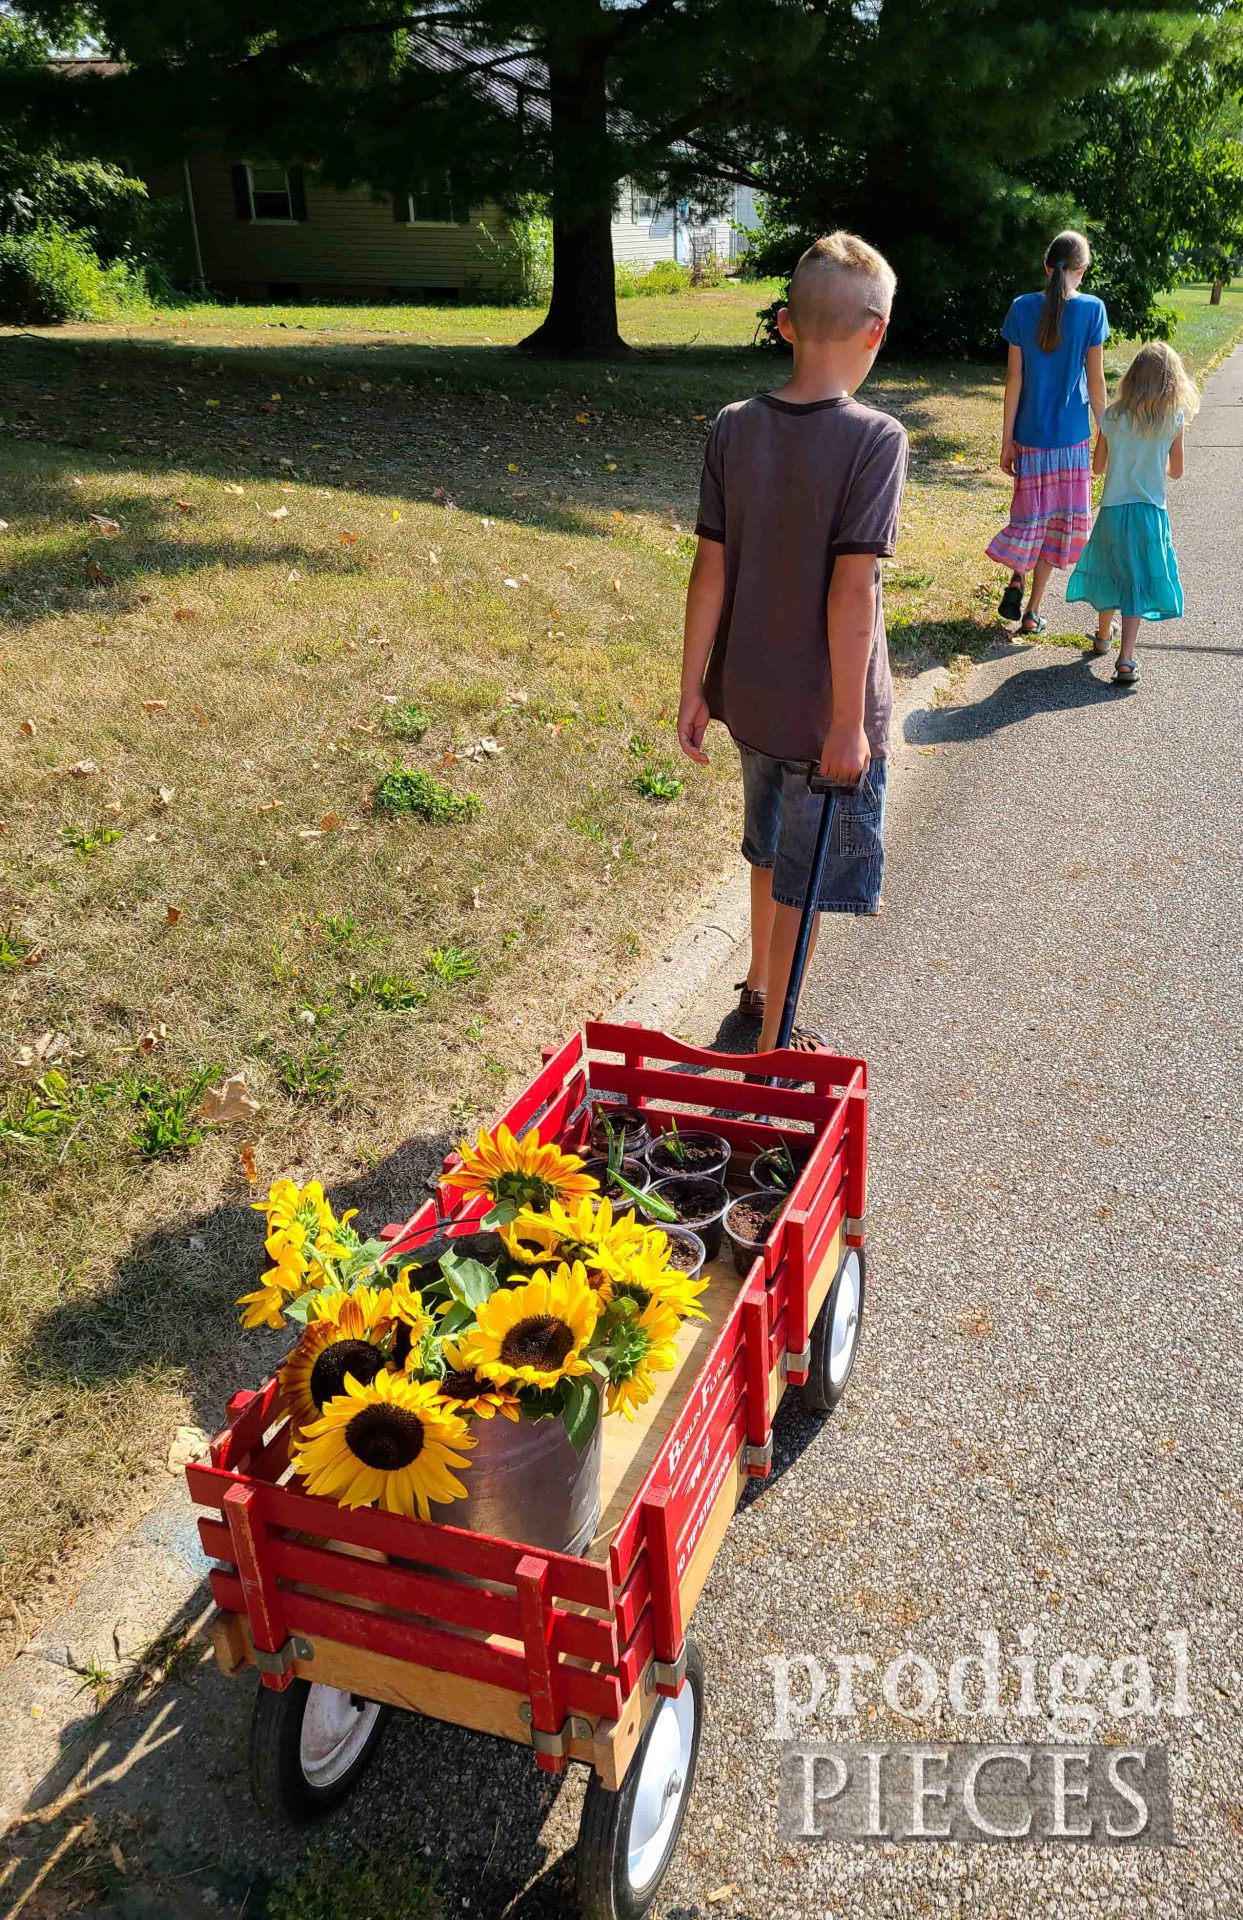 Wagon of Flowers and Succulents by Larissa of Prodigal Pieces | prodigalpieces.com #prodigalpieces #gardening #encouragement